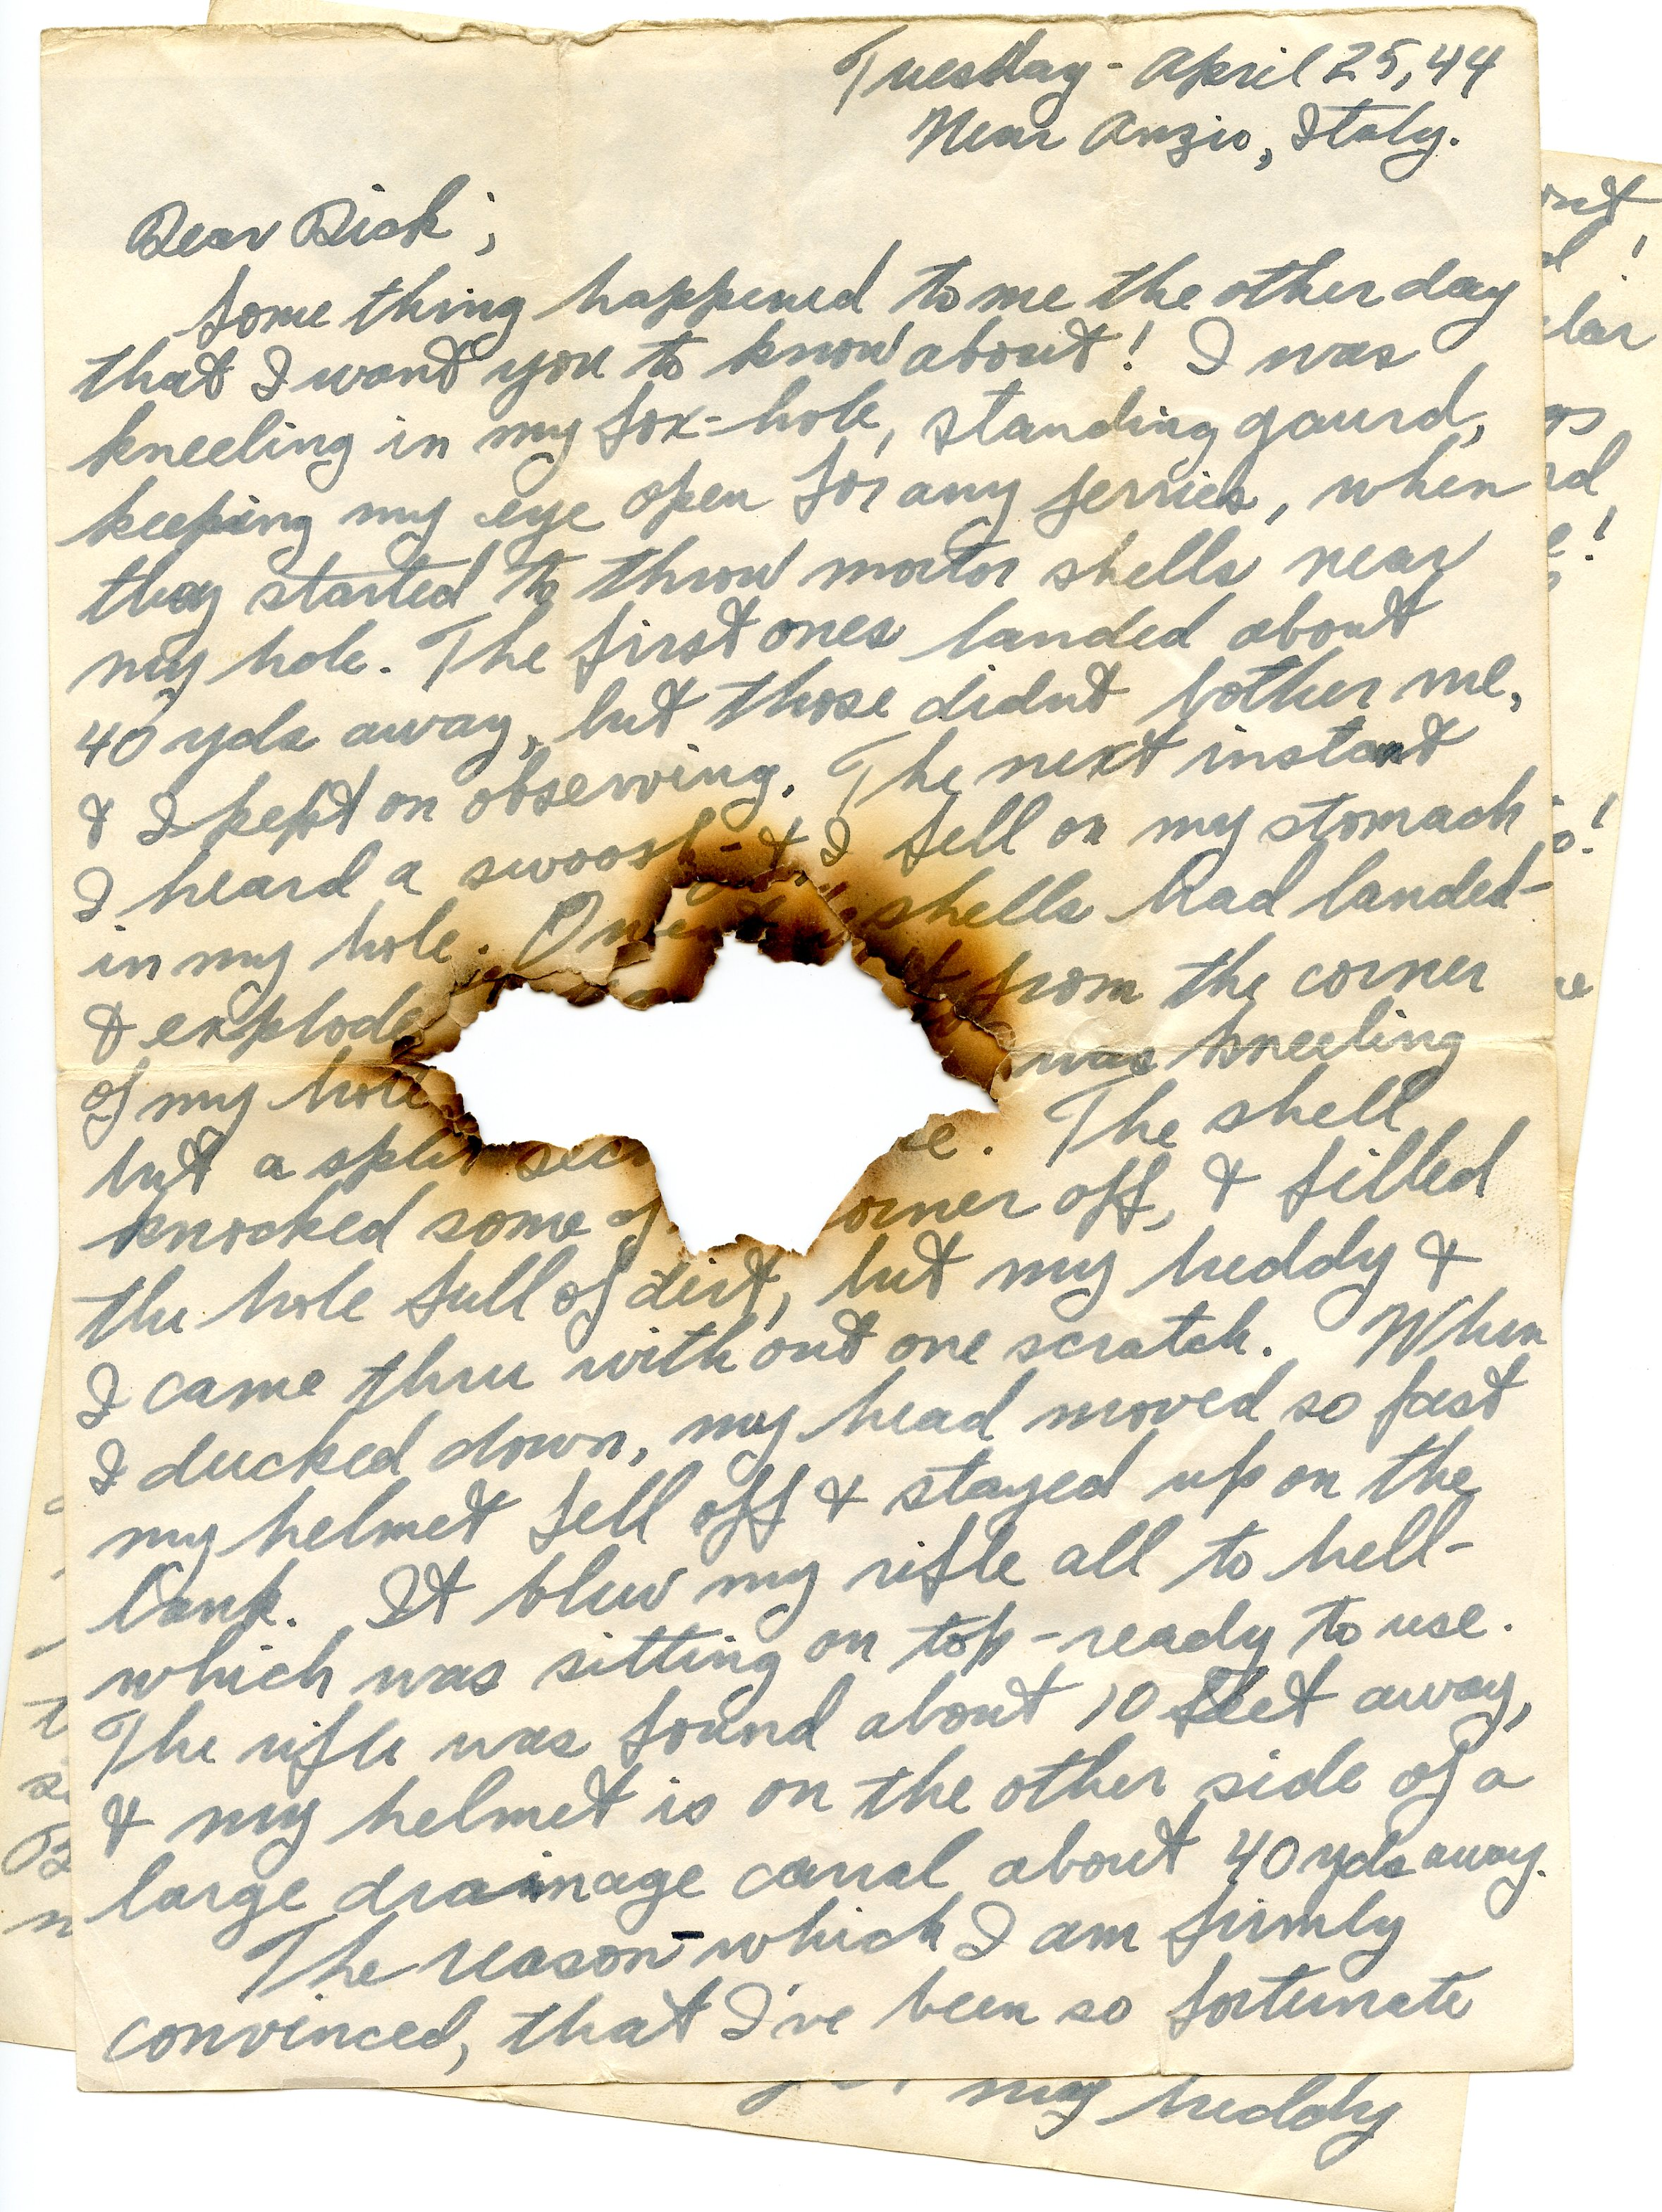 old letter with burn hole in the middle